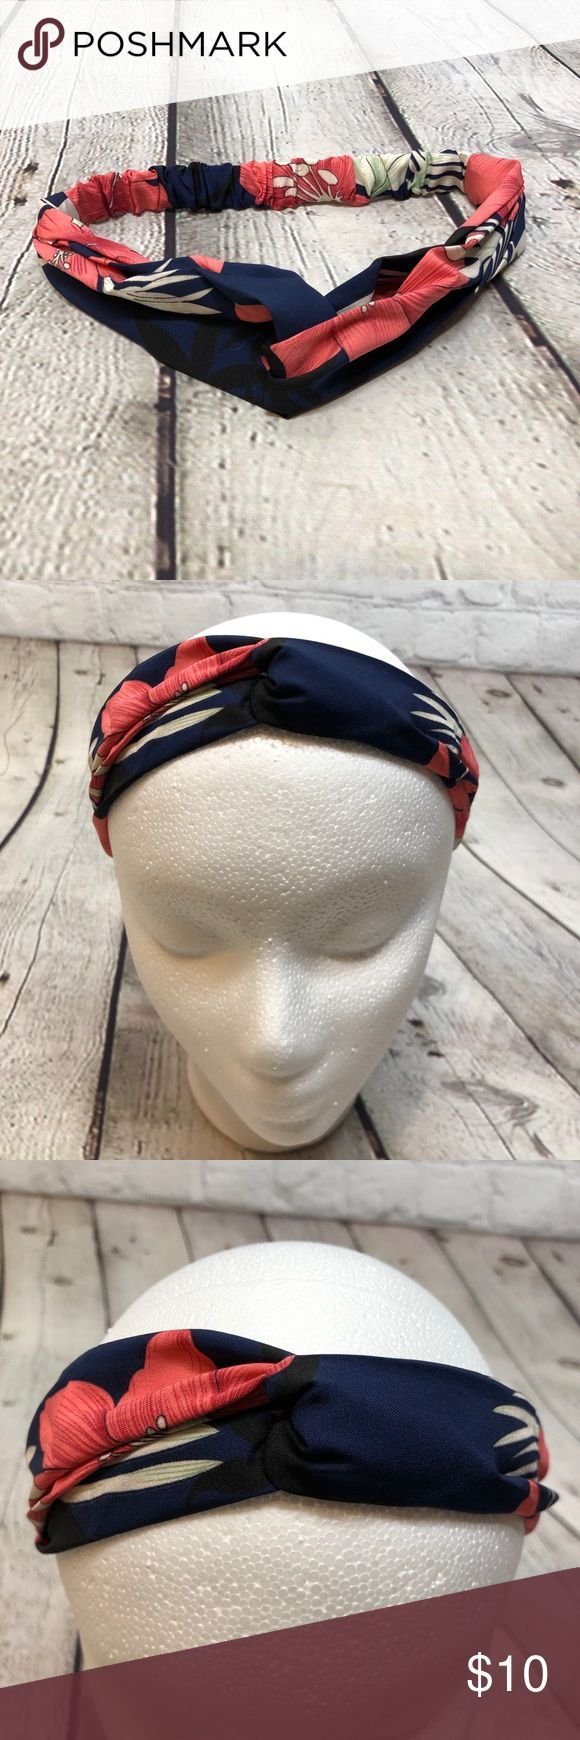 Knotted Boho Headband Floral Navy Pink White This knotted headband is super cute